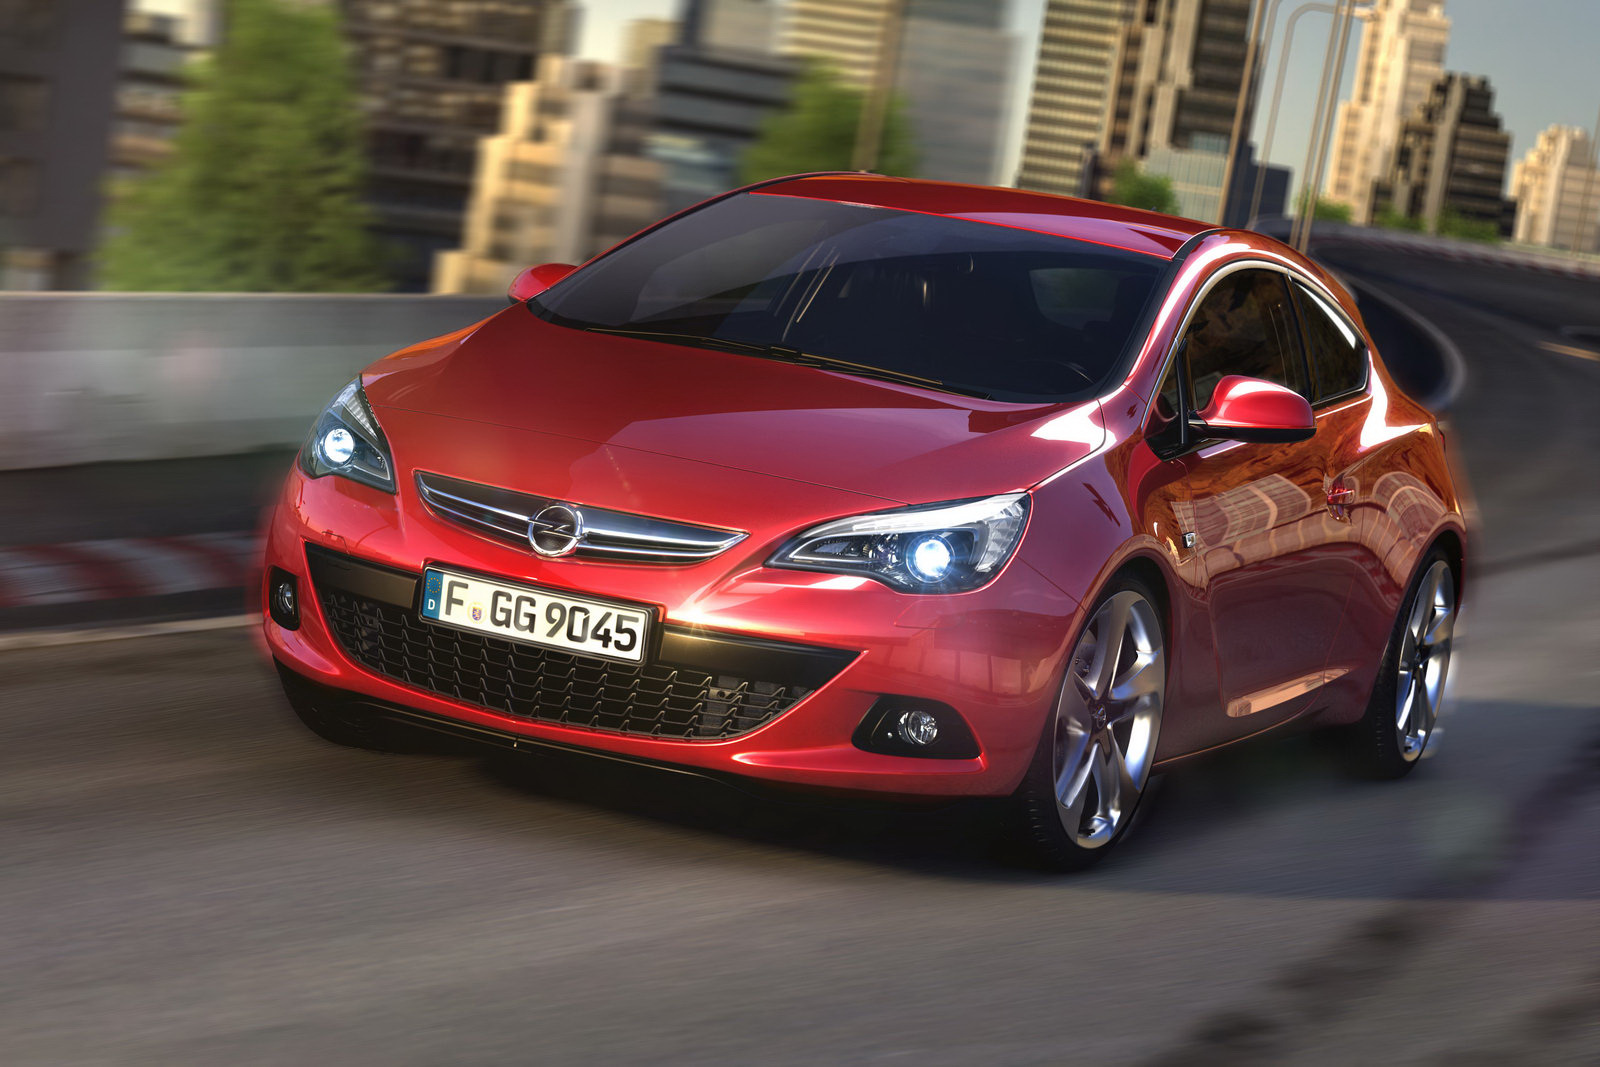 2012 Opel Astra GTC 1 2012 Opel Astra GTC Sport Hatch with Excellent Features